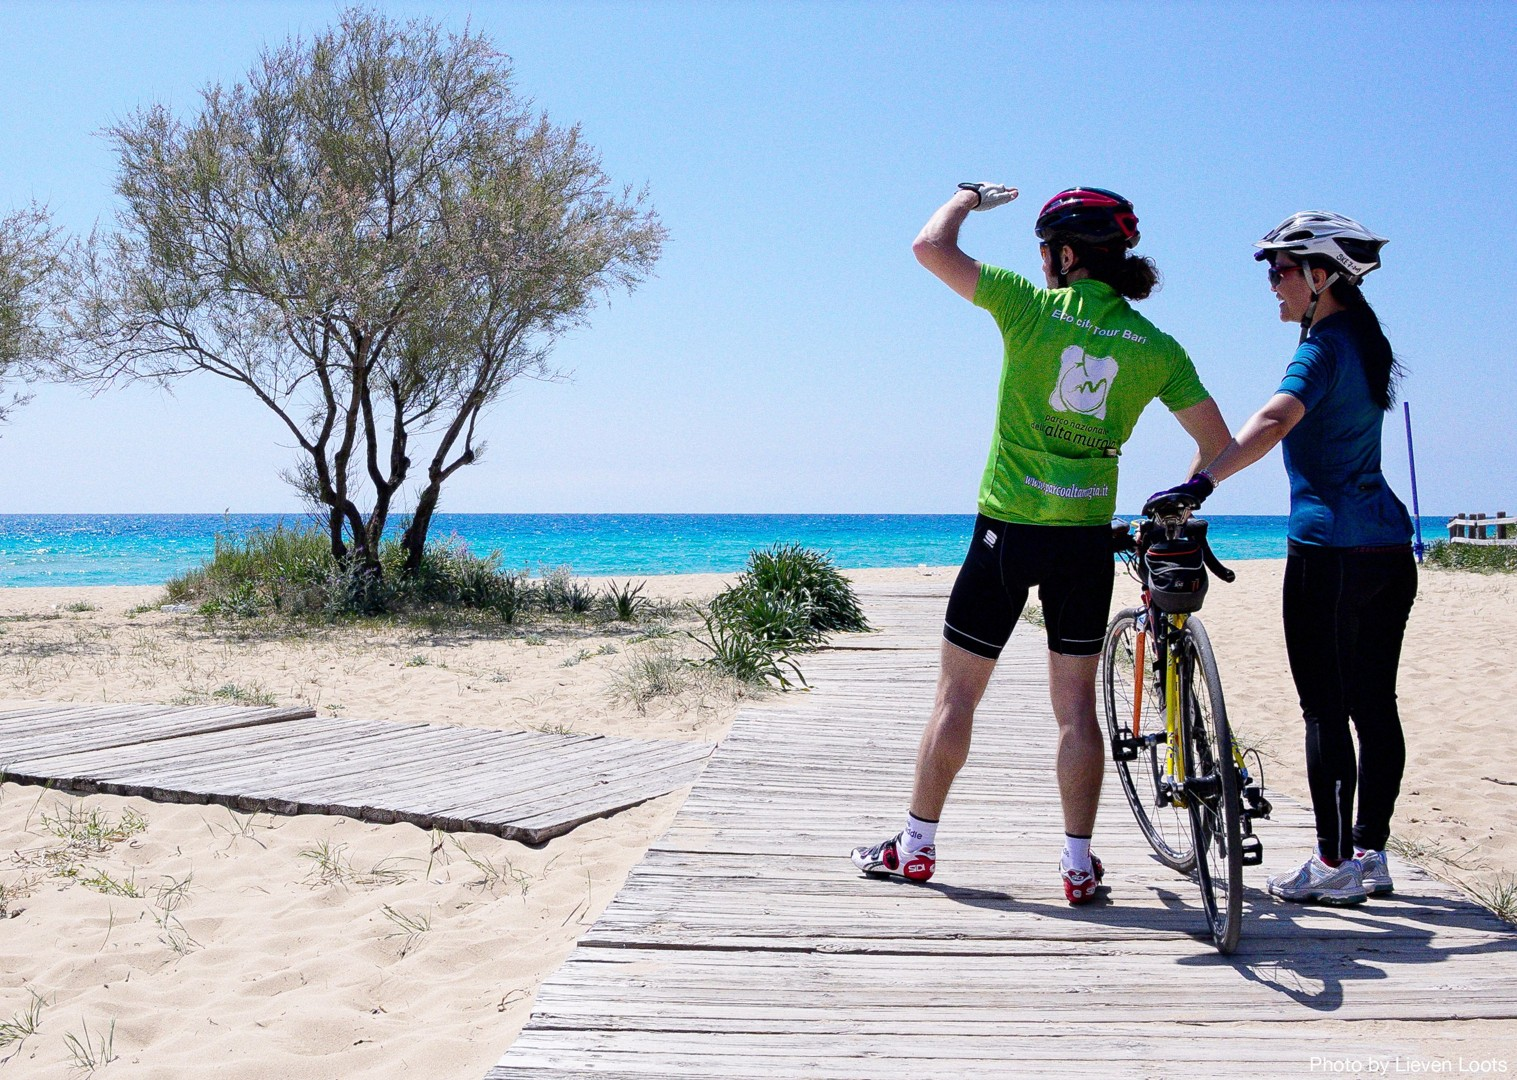 views-italy-coast-puglia-holiday.jpg - Italy - Puglia - The Heel of Italy - Self-Guided Road Cycling Holiday - Italia Road Cycling